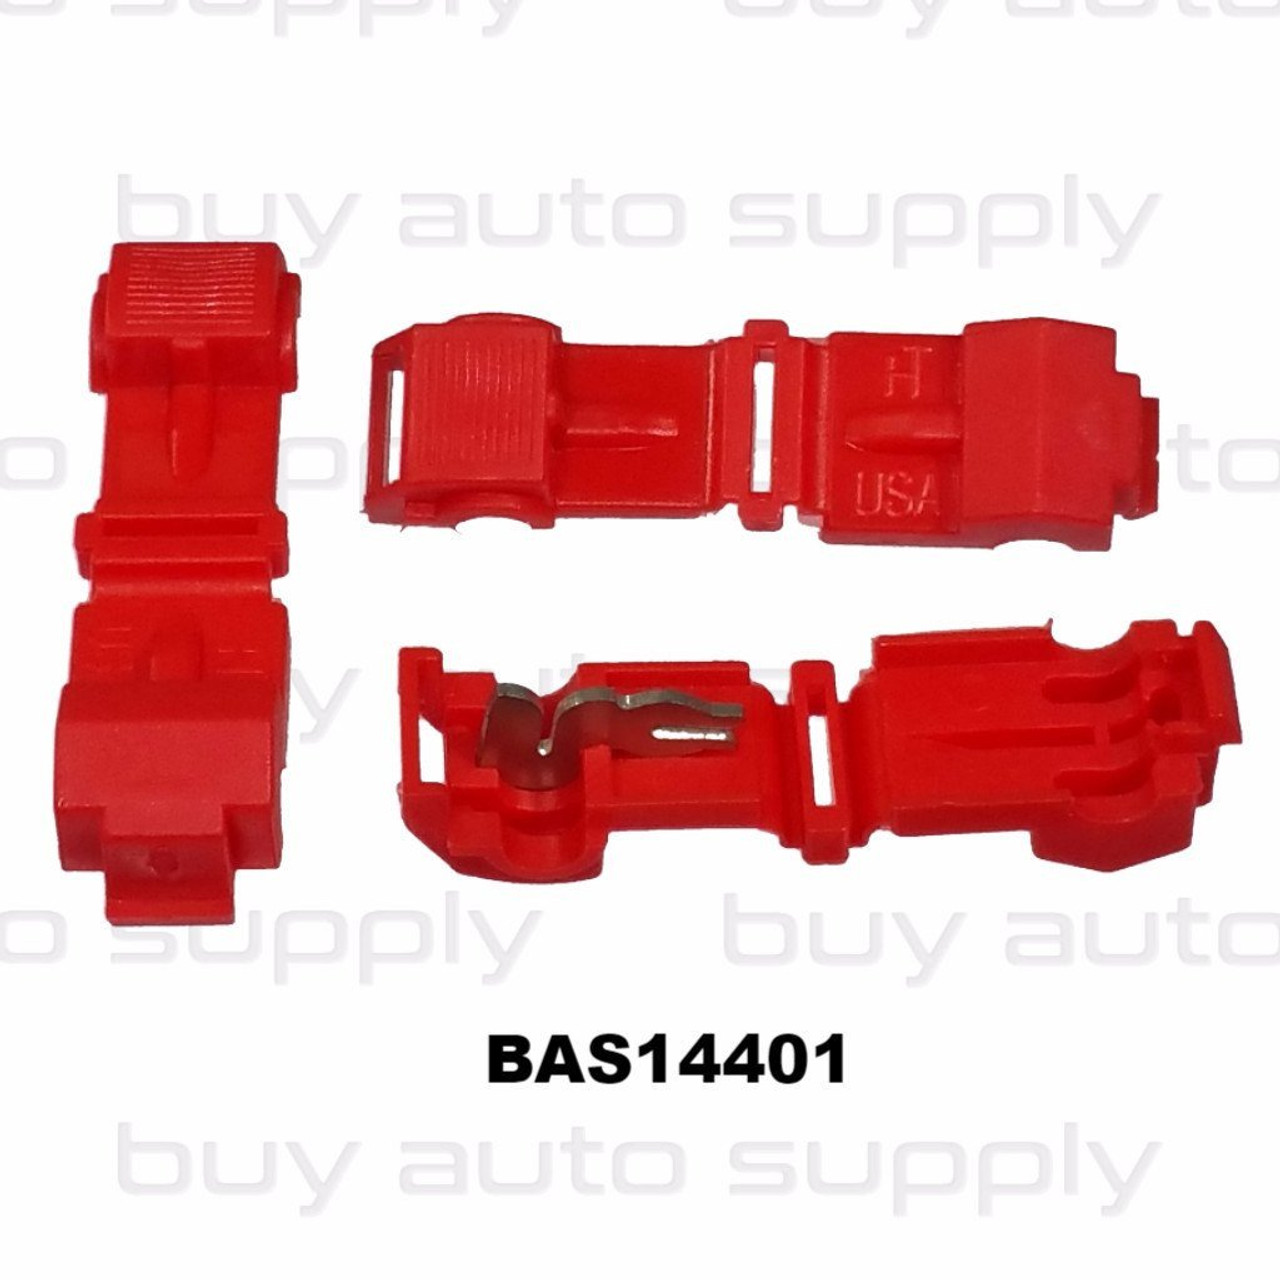 Red Electrical T-Tap (22-18 AWG) USA Made - BAS14401 - from Buy Auto Supply